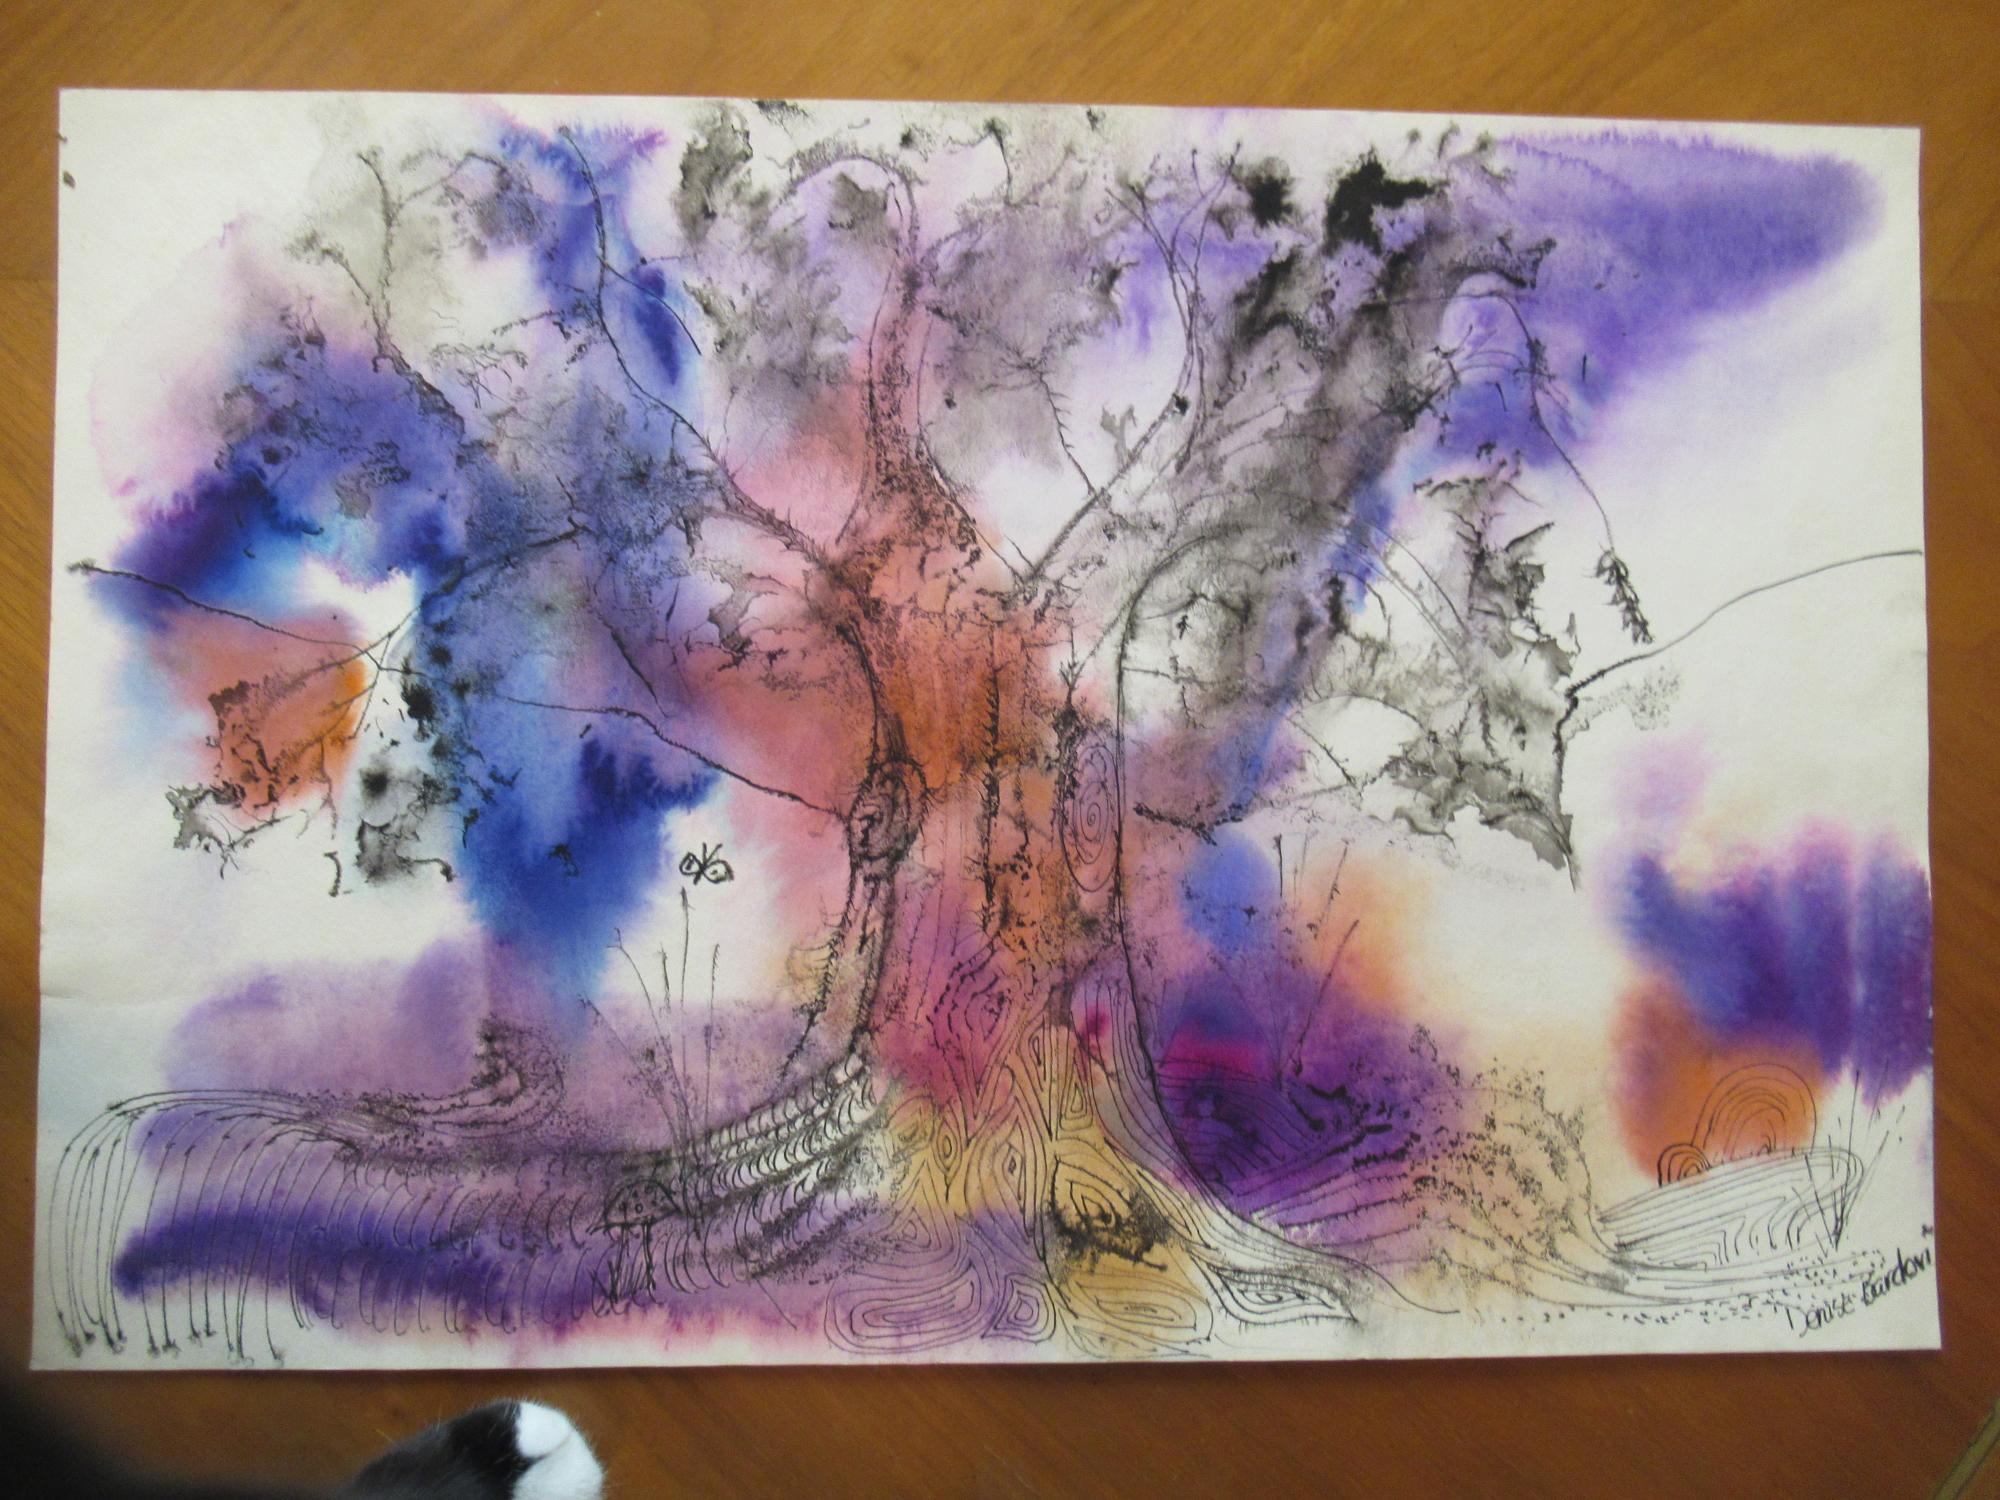 Tree (Untitled, Original Watercolor) Watercolor By Denise Bardon Near Fine